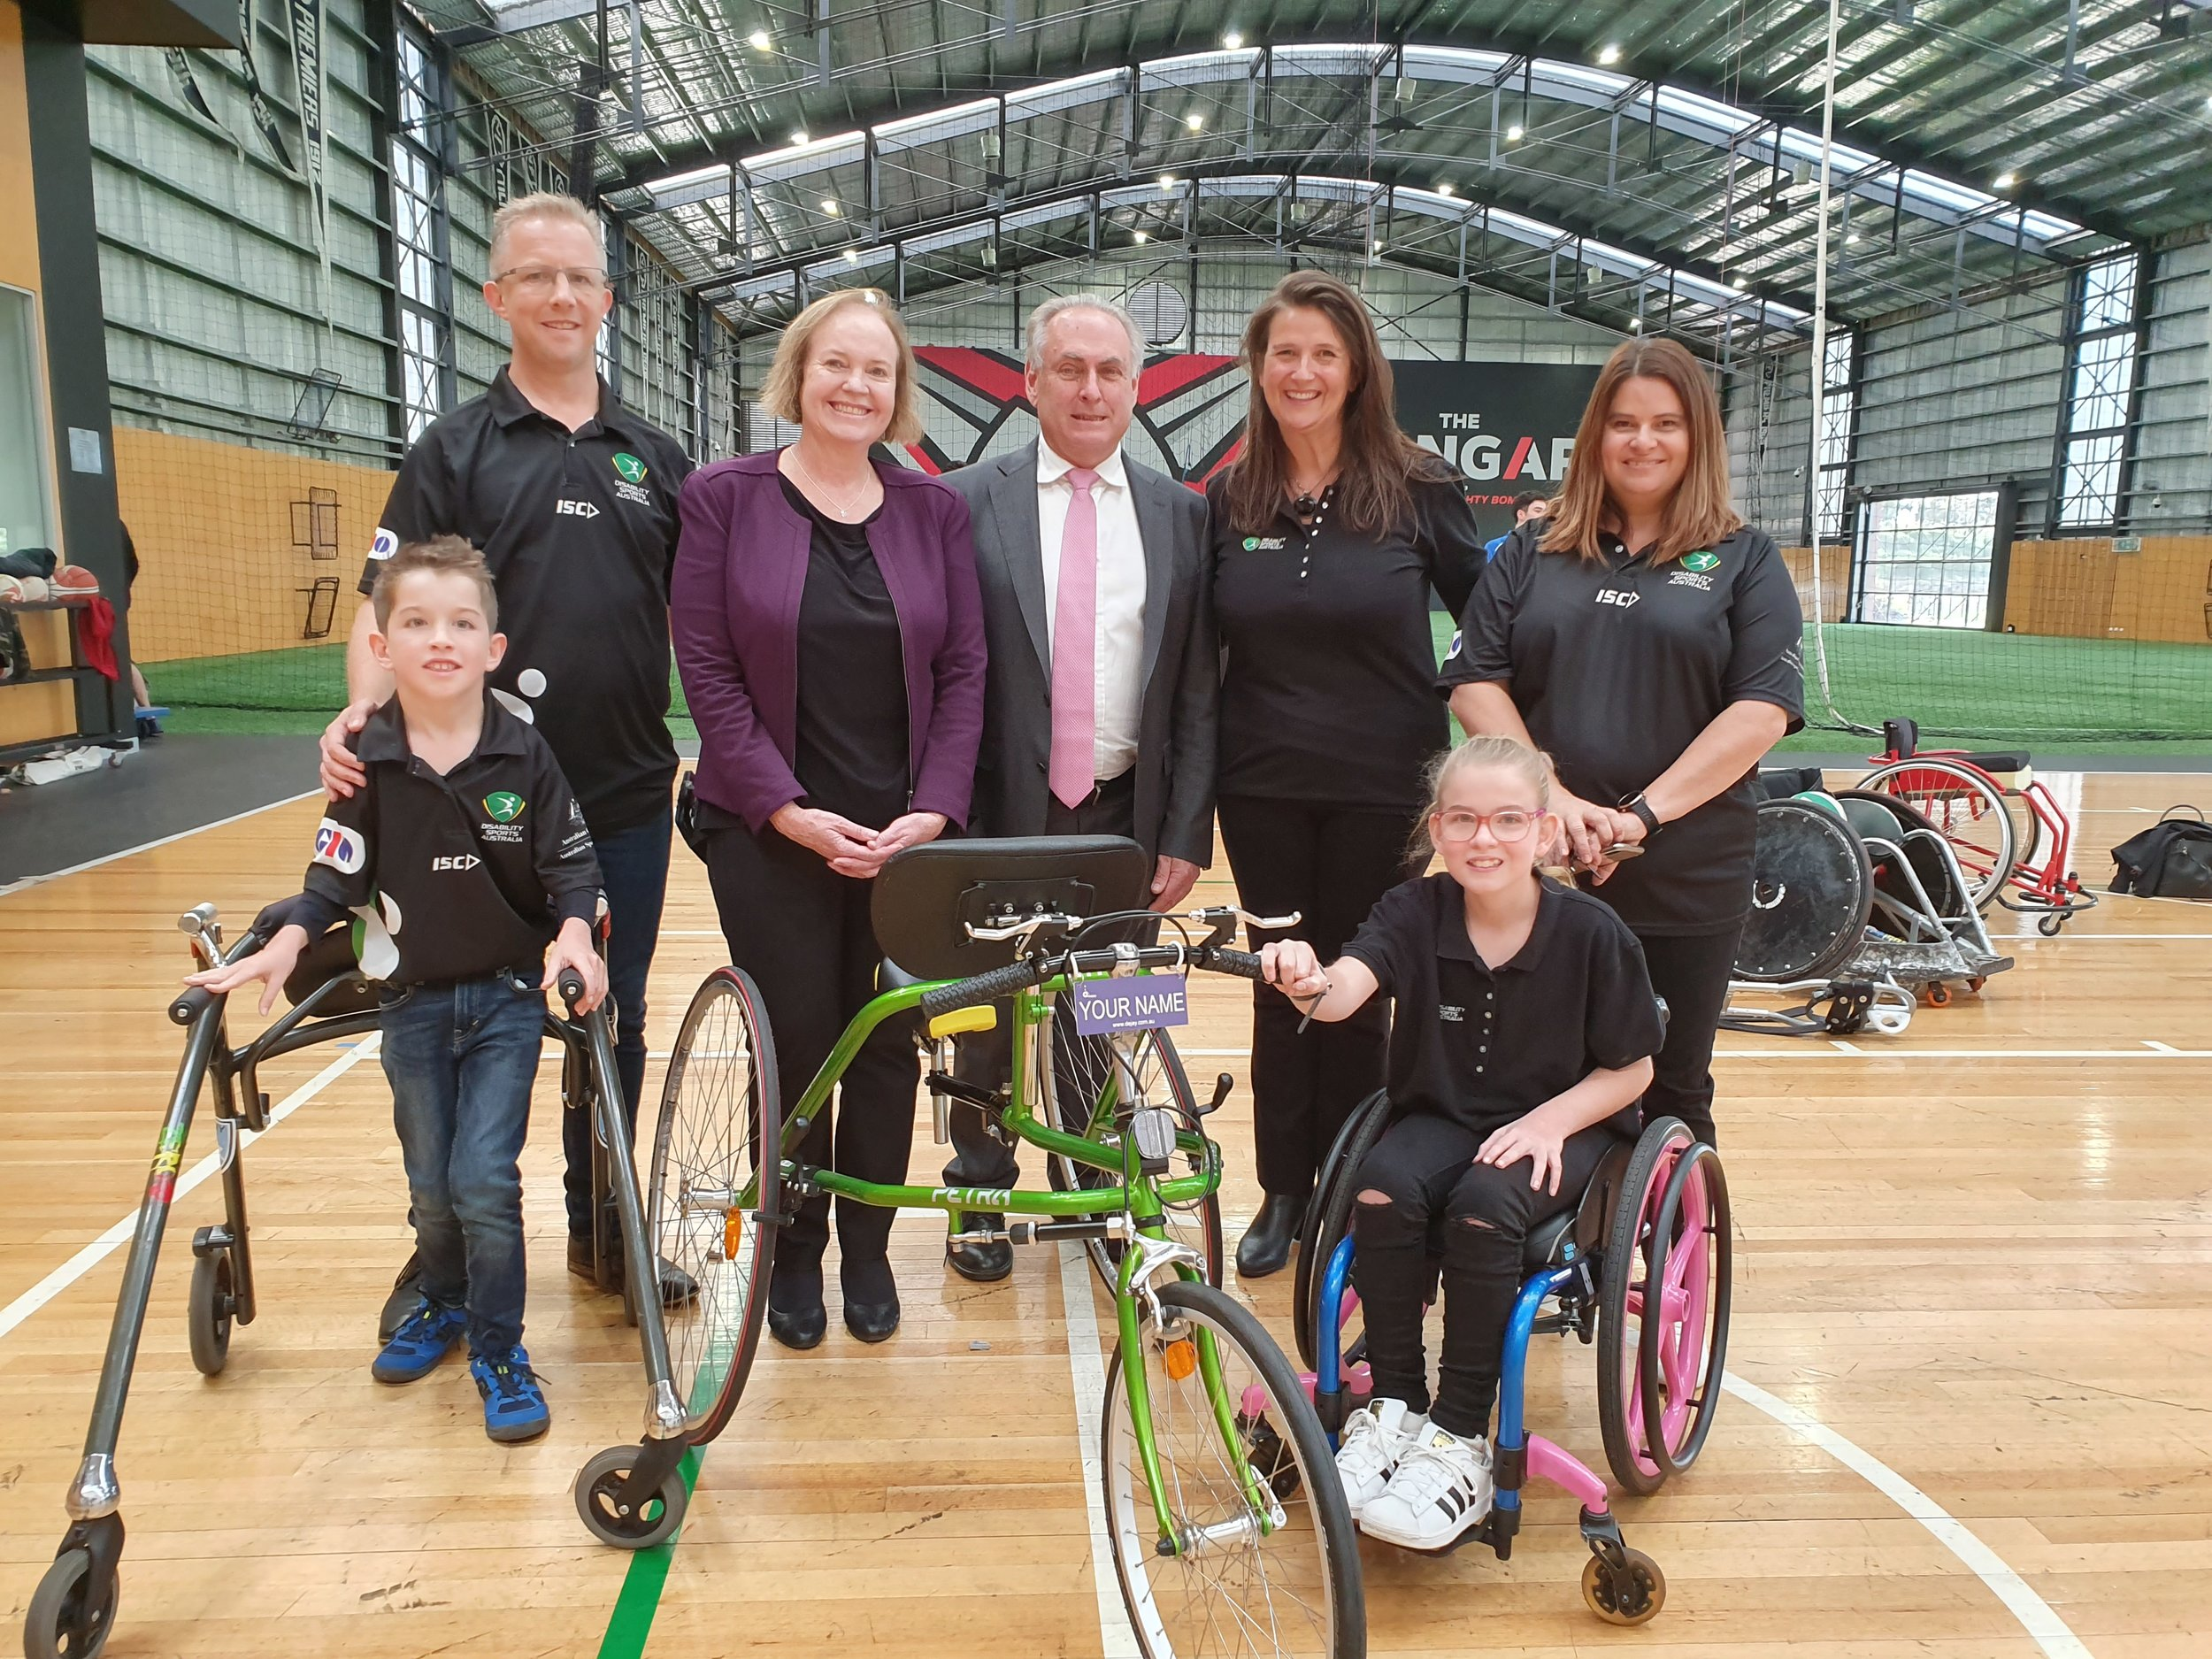 (L - R) Back Row: Mr Richard Keith (Acting Chair, RaceRunning Australia), Senator Carol Brown (Shadow Minister for Disability & Carers), Senator the Hon Don Farrell (Shadow Minister for Sport), Ms Jenni Cole (CEO, DIsability Sports Australia and Ms Jen Prior  Front Row: Mr Arran Keith (RaceRunning athlete) and Miss Emily Prior (Youth Ambassador, Disability Sports Australia)